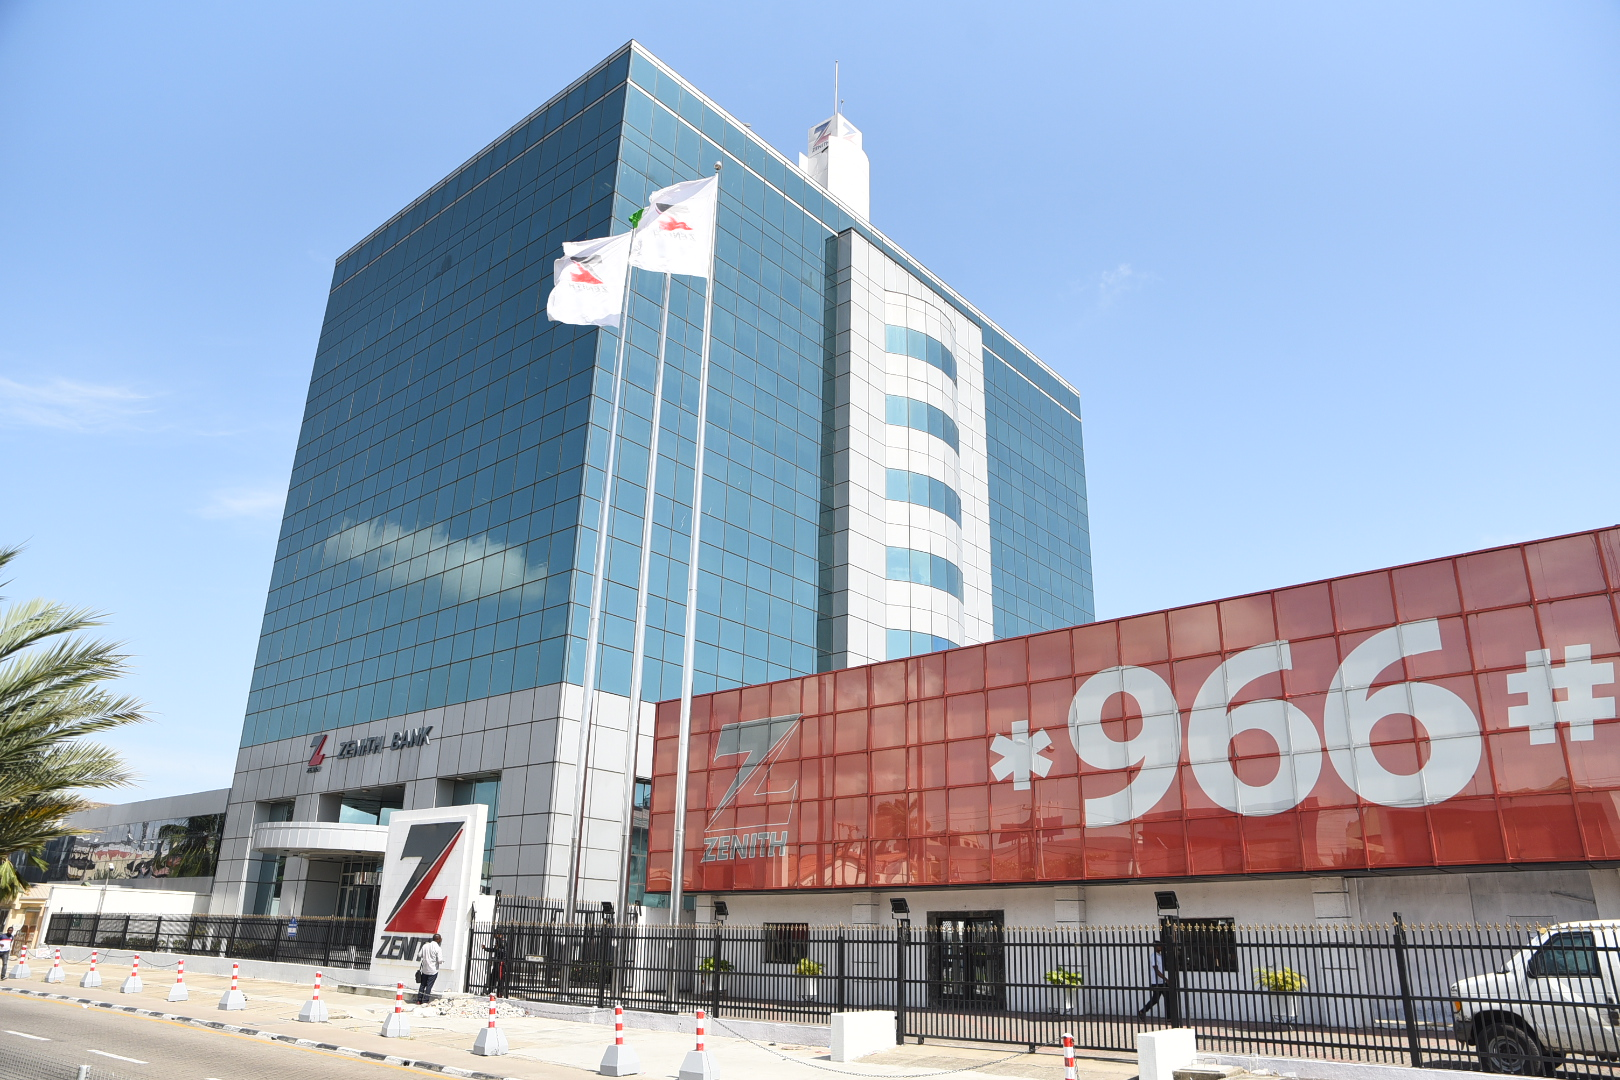 Zenith Bank Set To Acquire Union Bank